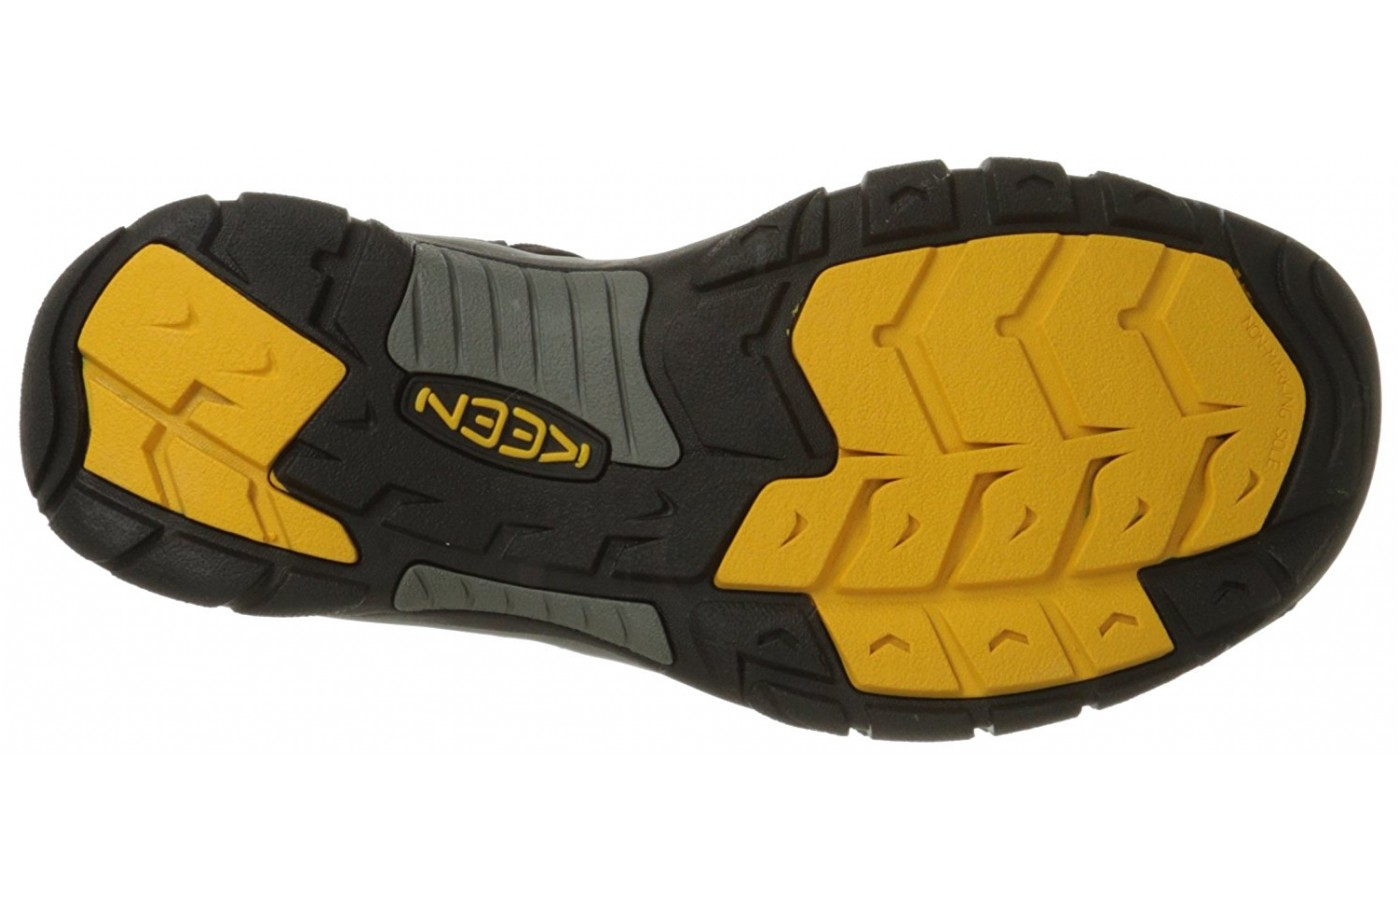 The carbon rubber outsole feels and performs like the Vibram outsole.